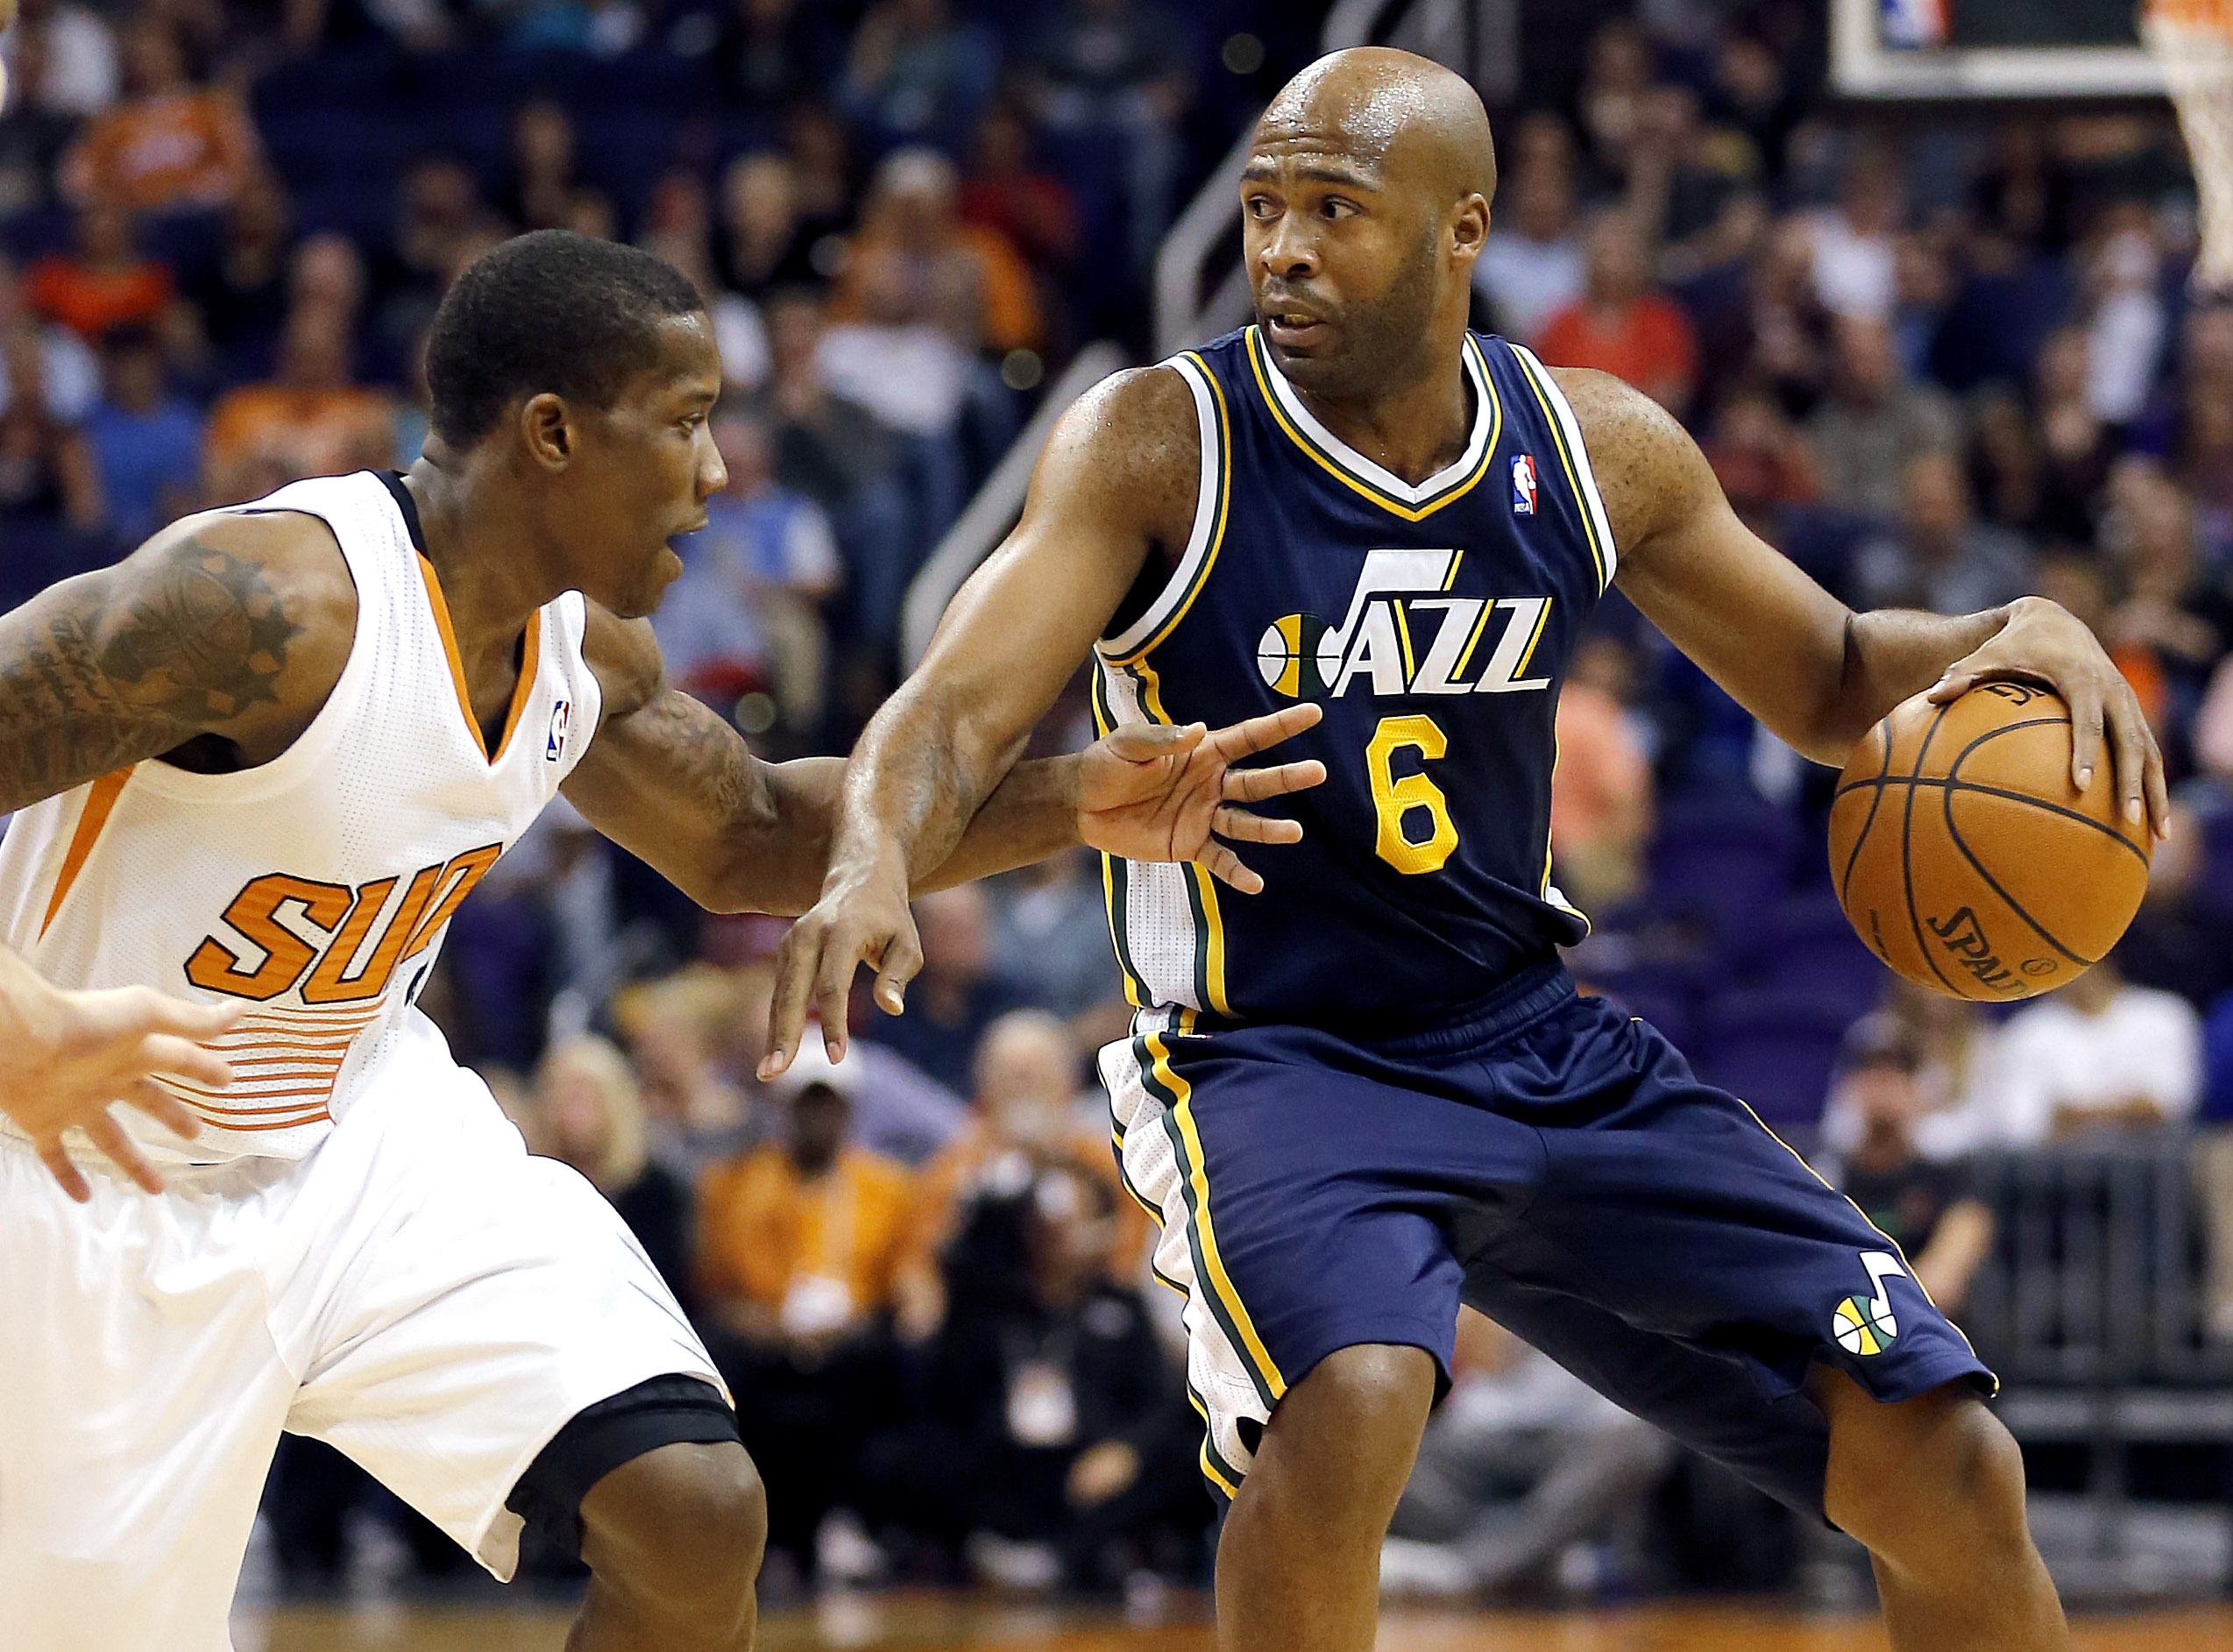 Bledsoe's 3-pointer gives Suns 87-84 win over Jazz